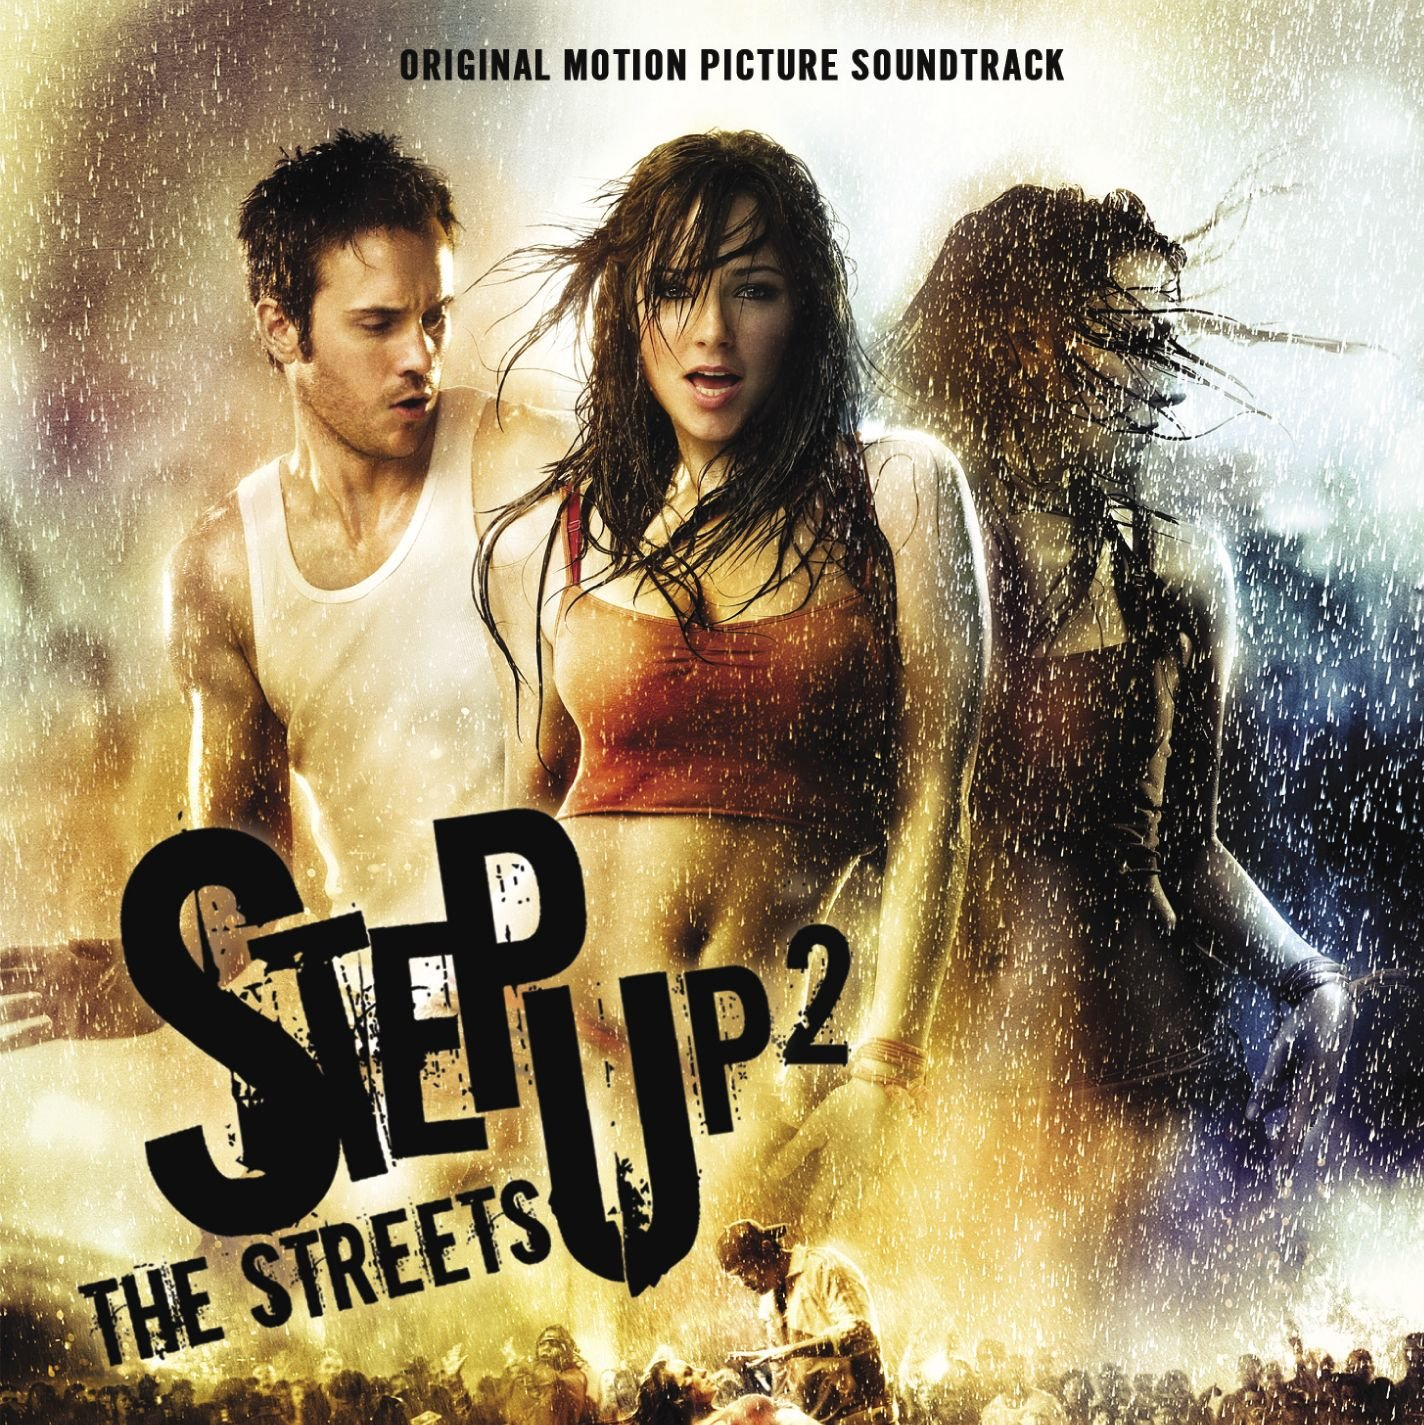 VA – Step Up 2 The Streets (2008) [FLAC]